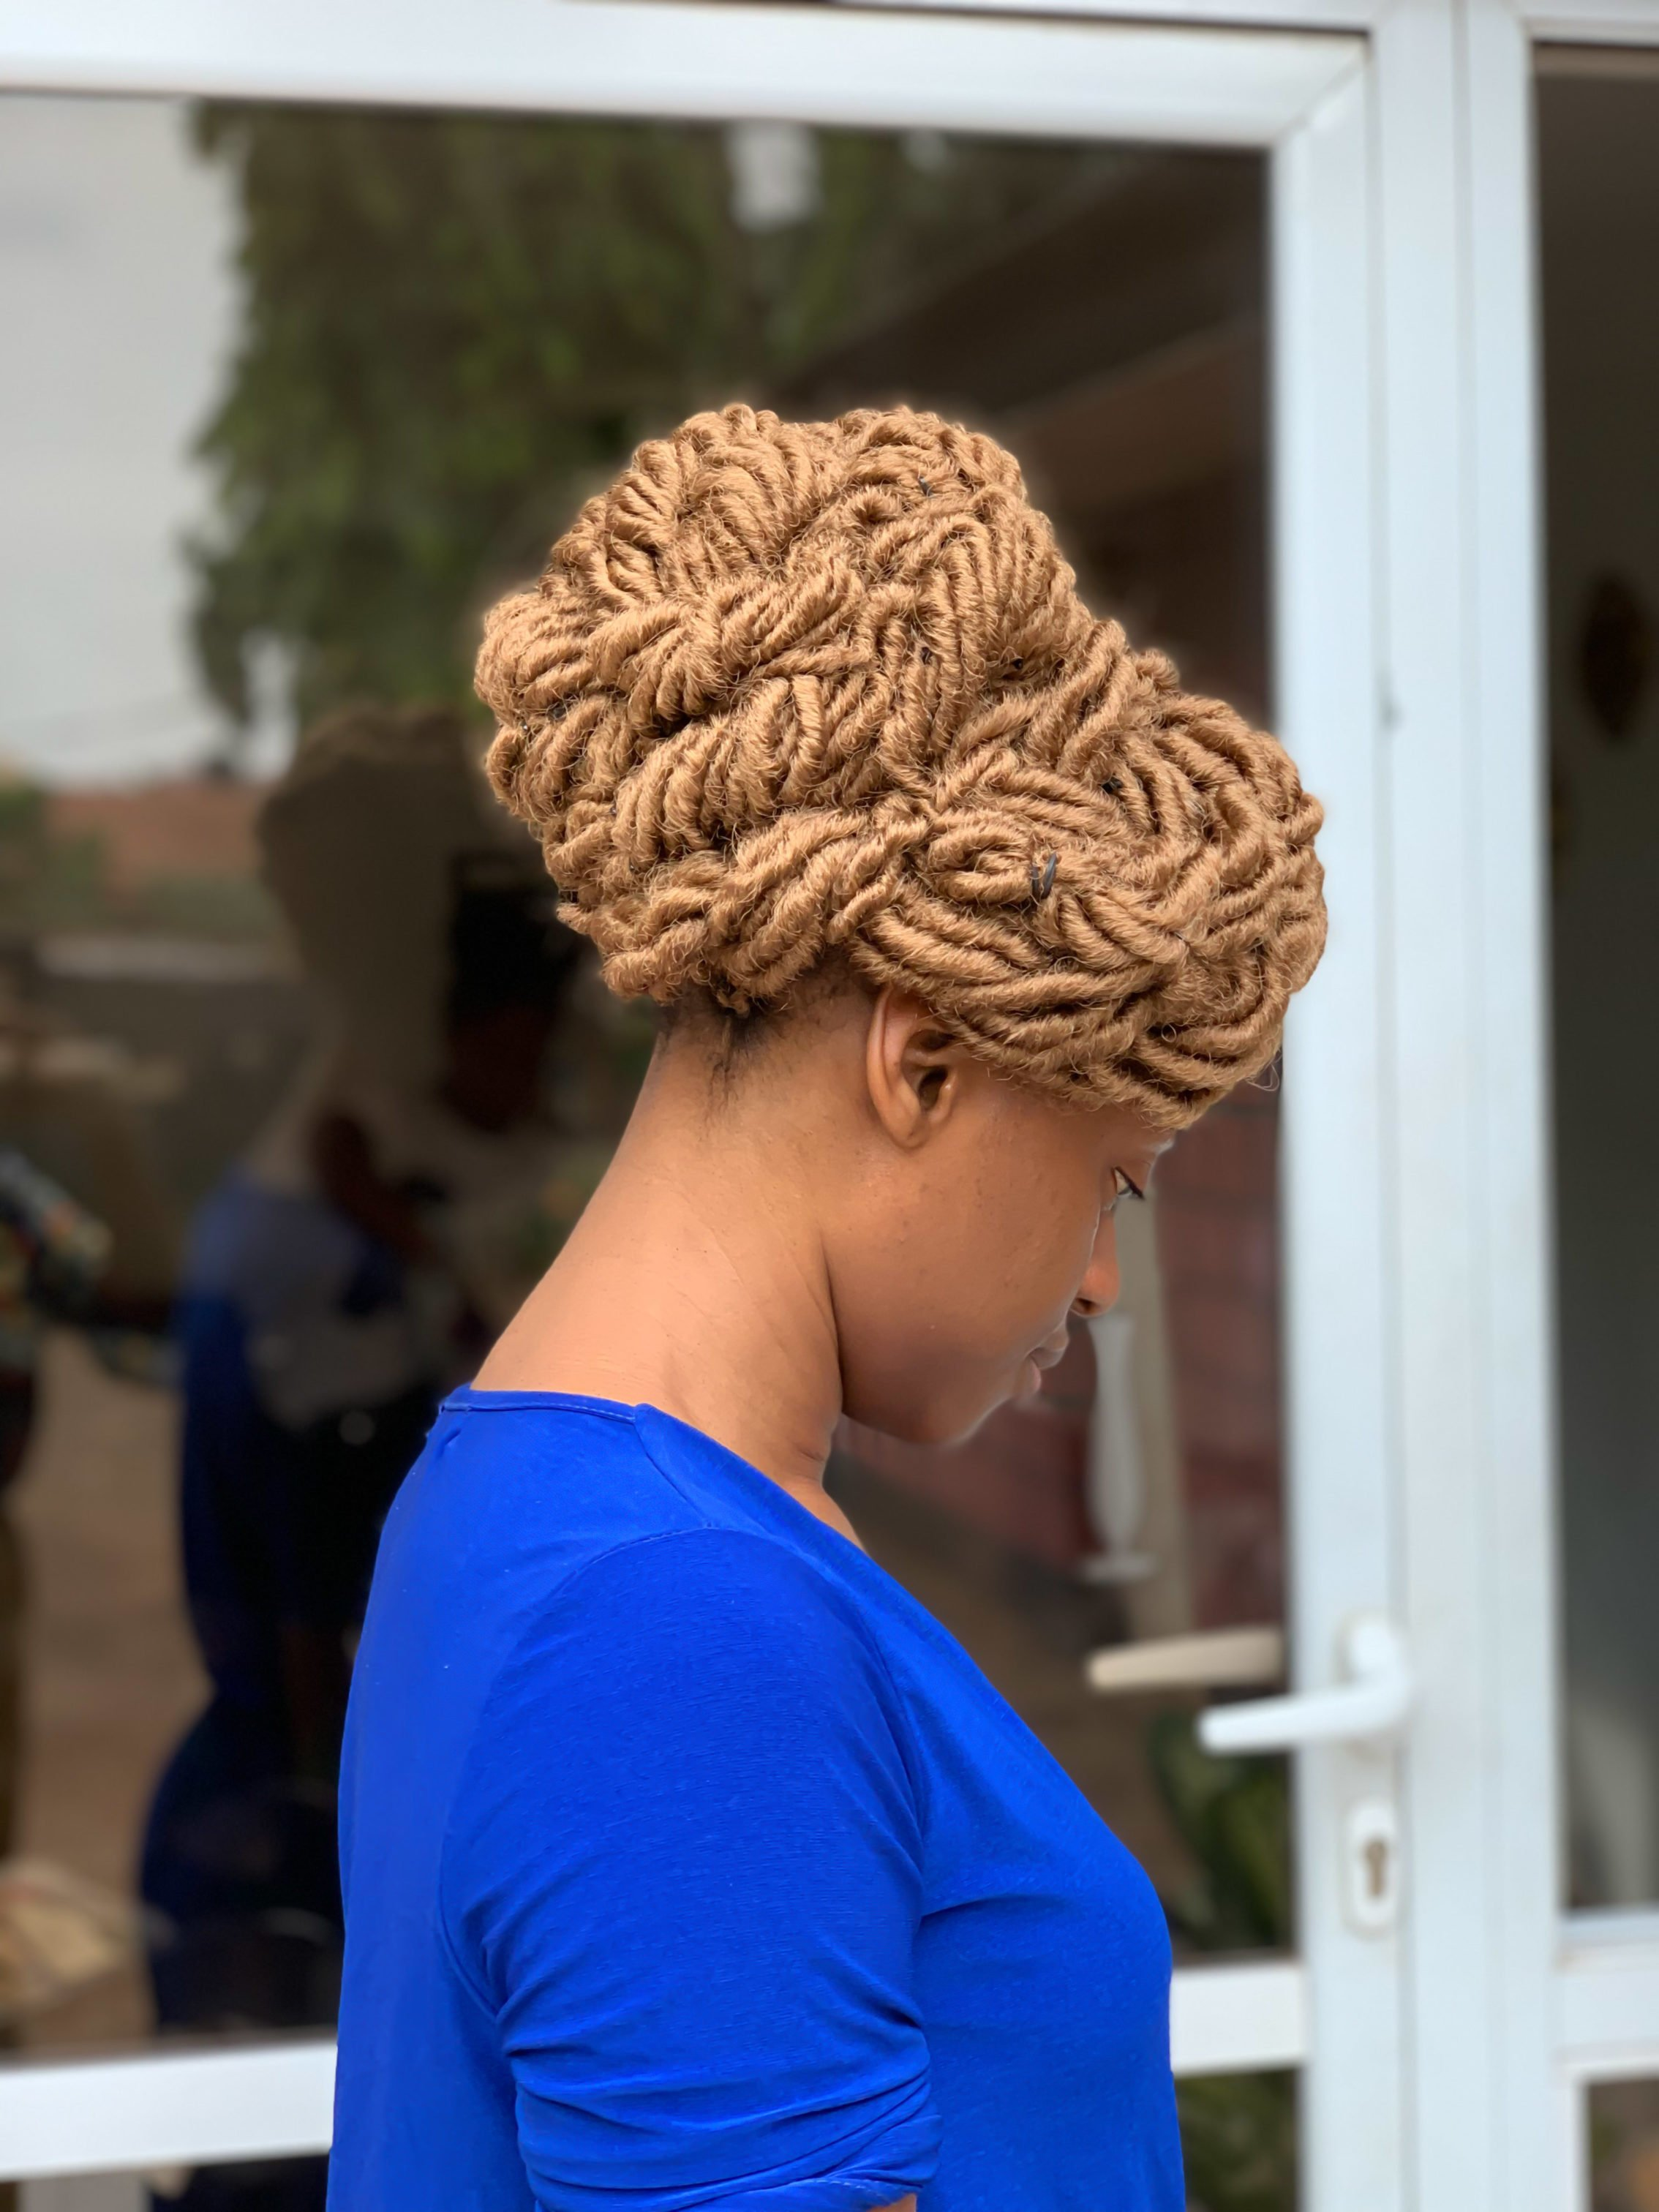 Crochet faux locs by ST Hair and Beauty